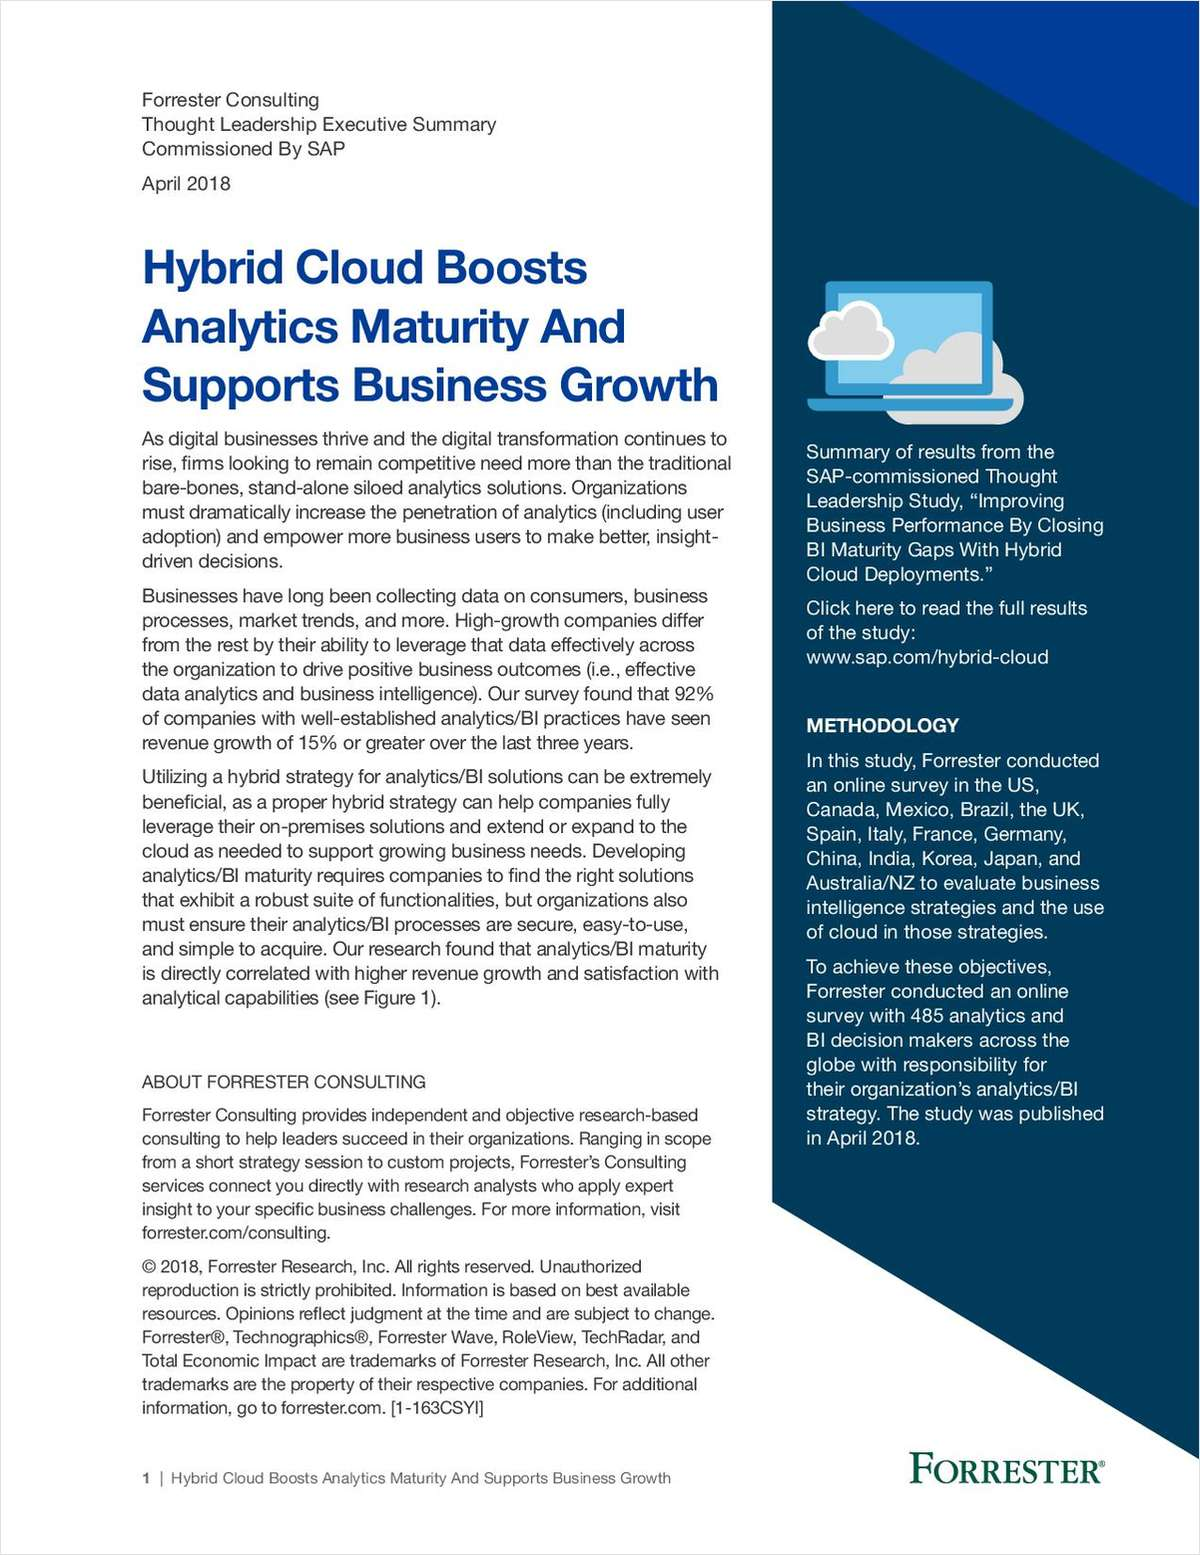 Hybrid Cloud Boosts Analytics Maturity & Supports Business Growth